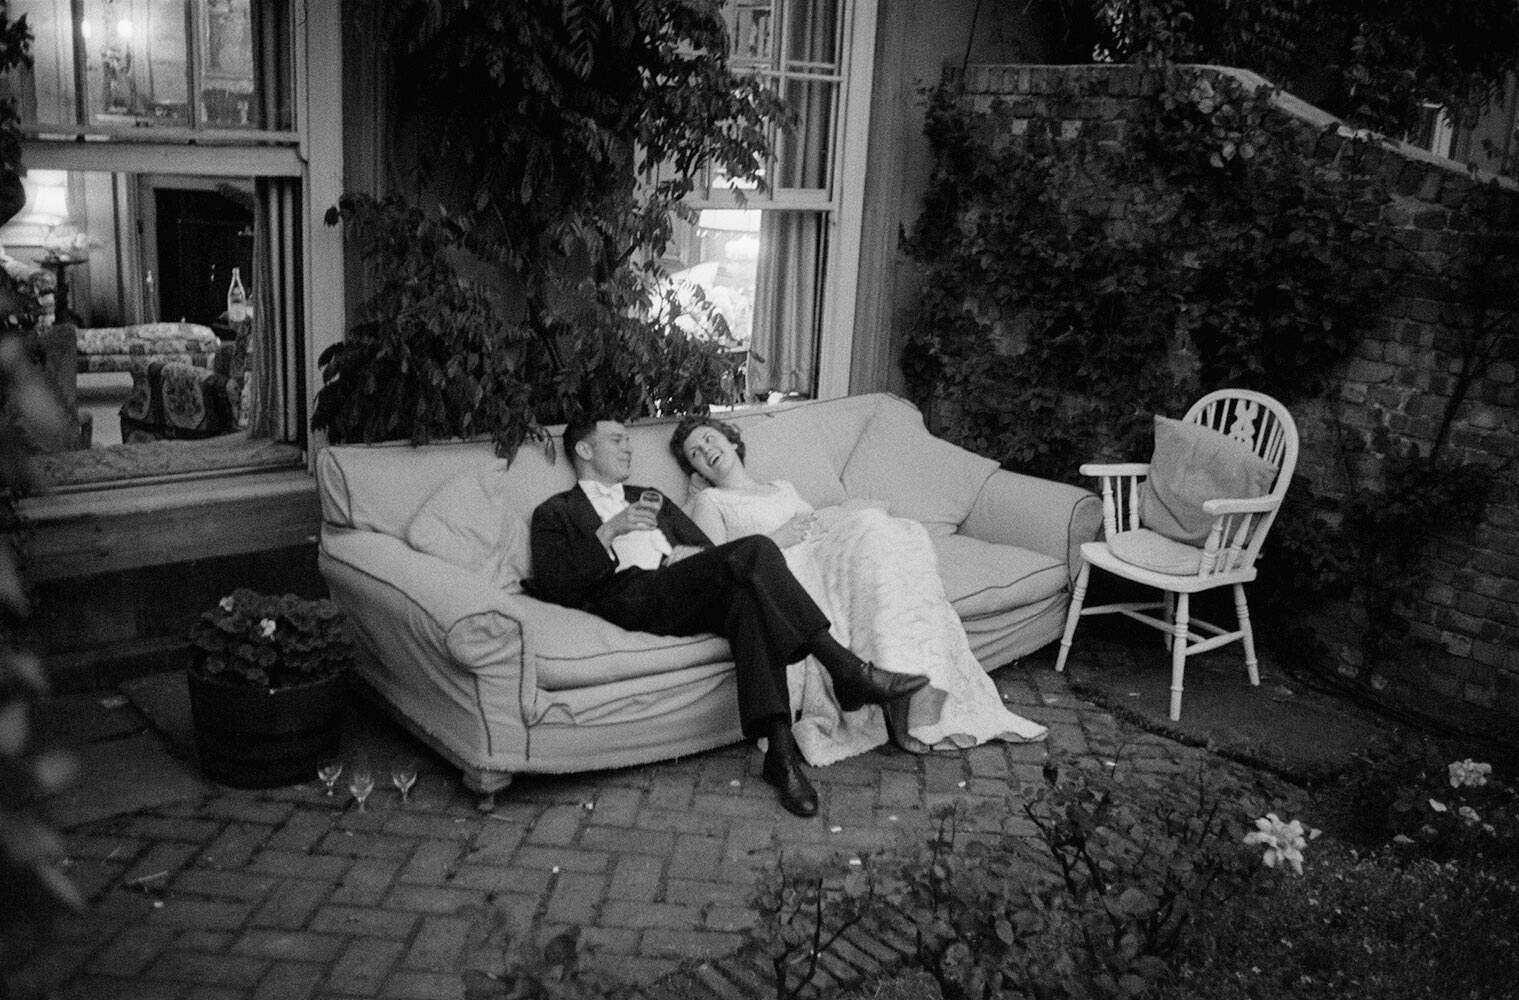 Couple At Party fine art photography